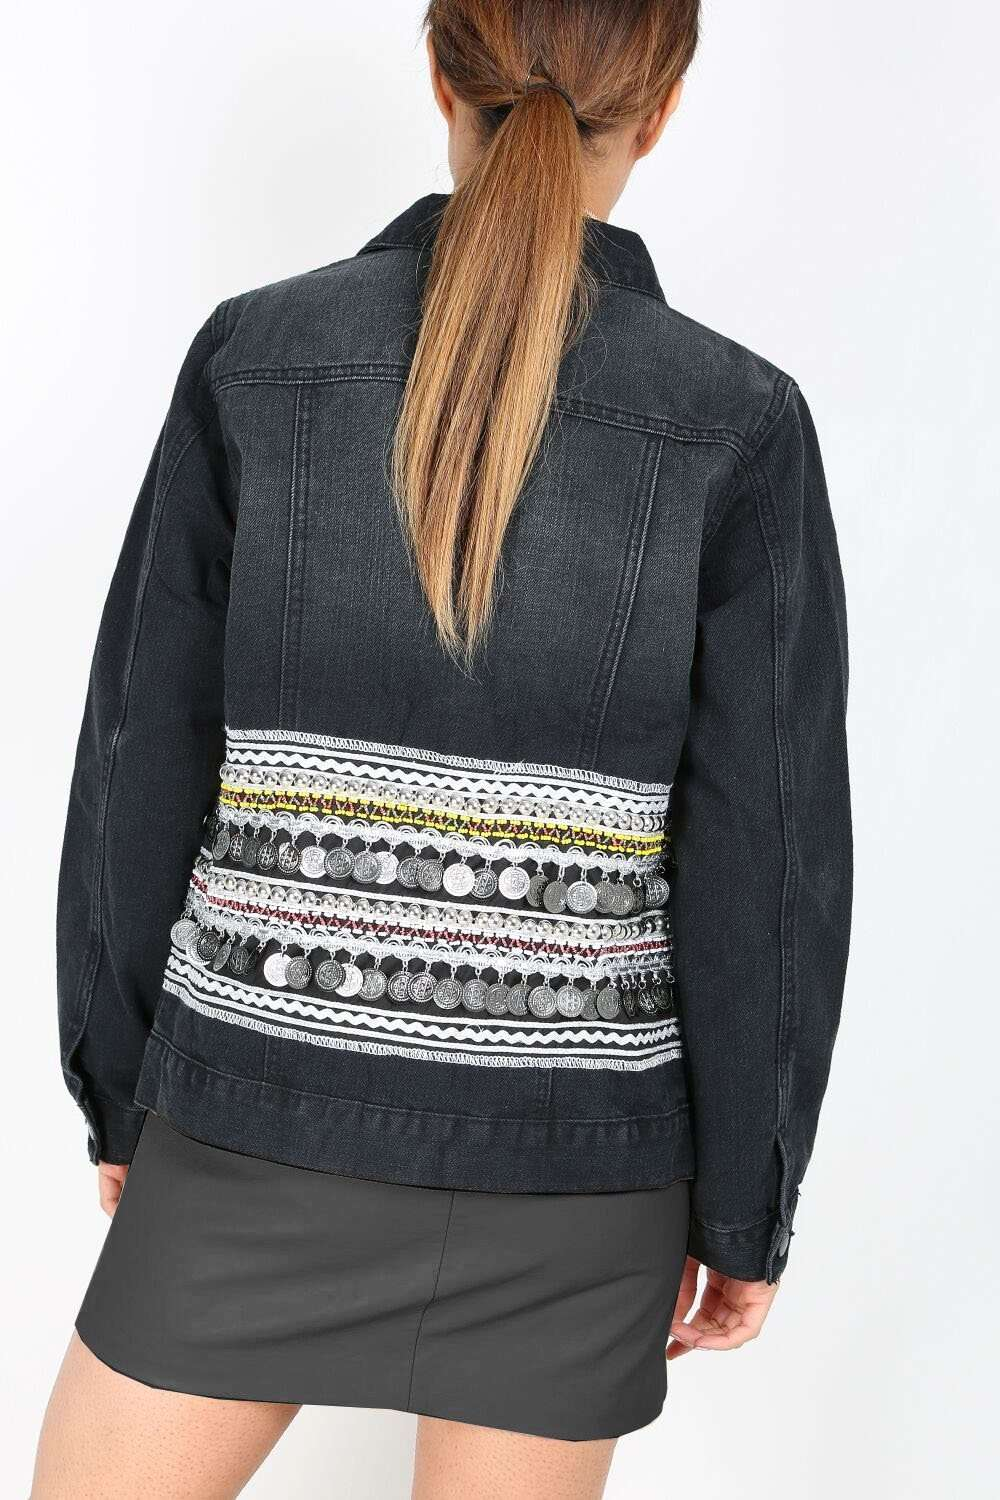 Portia Aztec Coin Trim Oversized Denim Jacket - bejealous-com